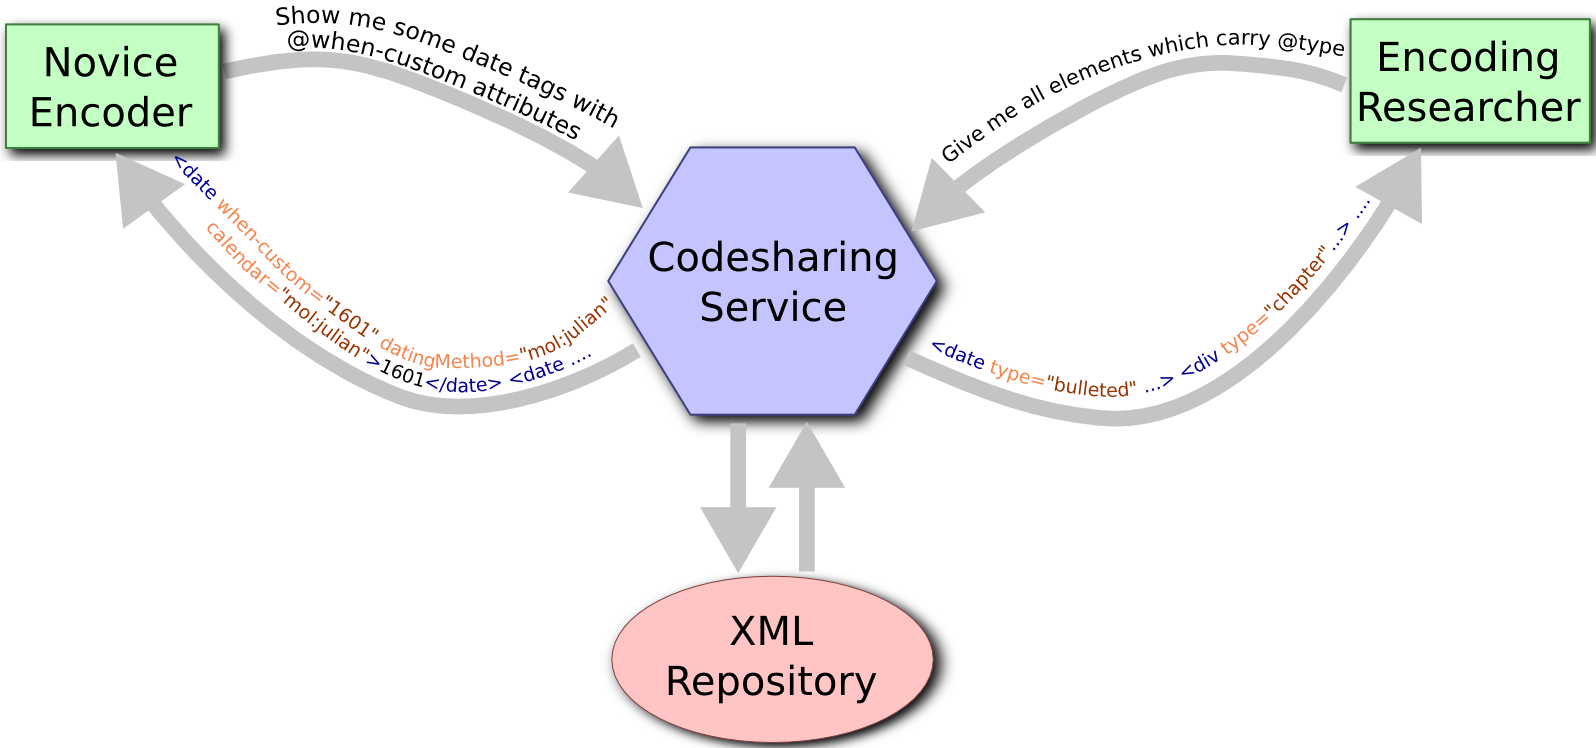 A CodeSharing service can serve the needs of novice encoders as well as encoding researchers.